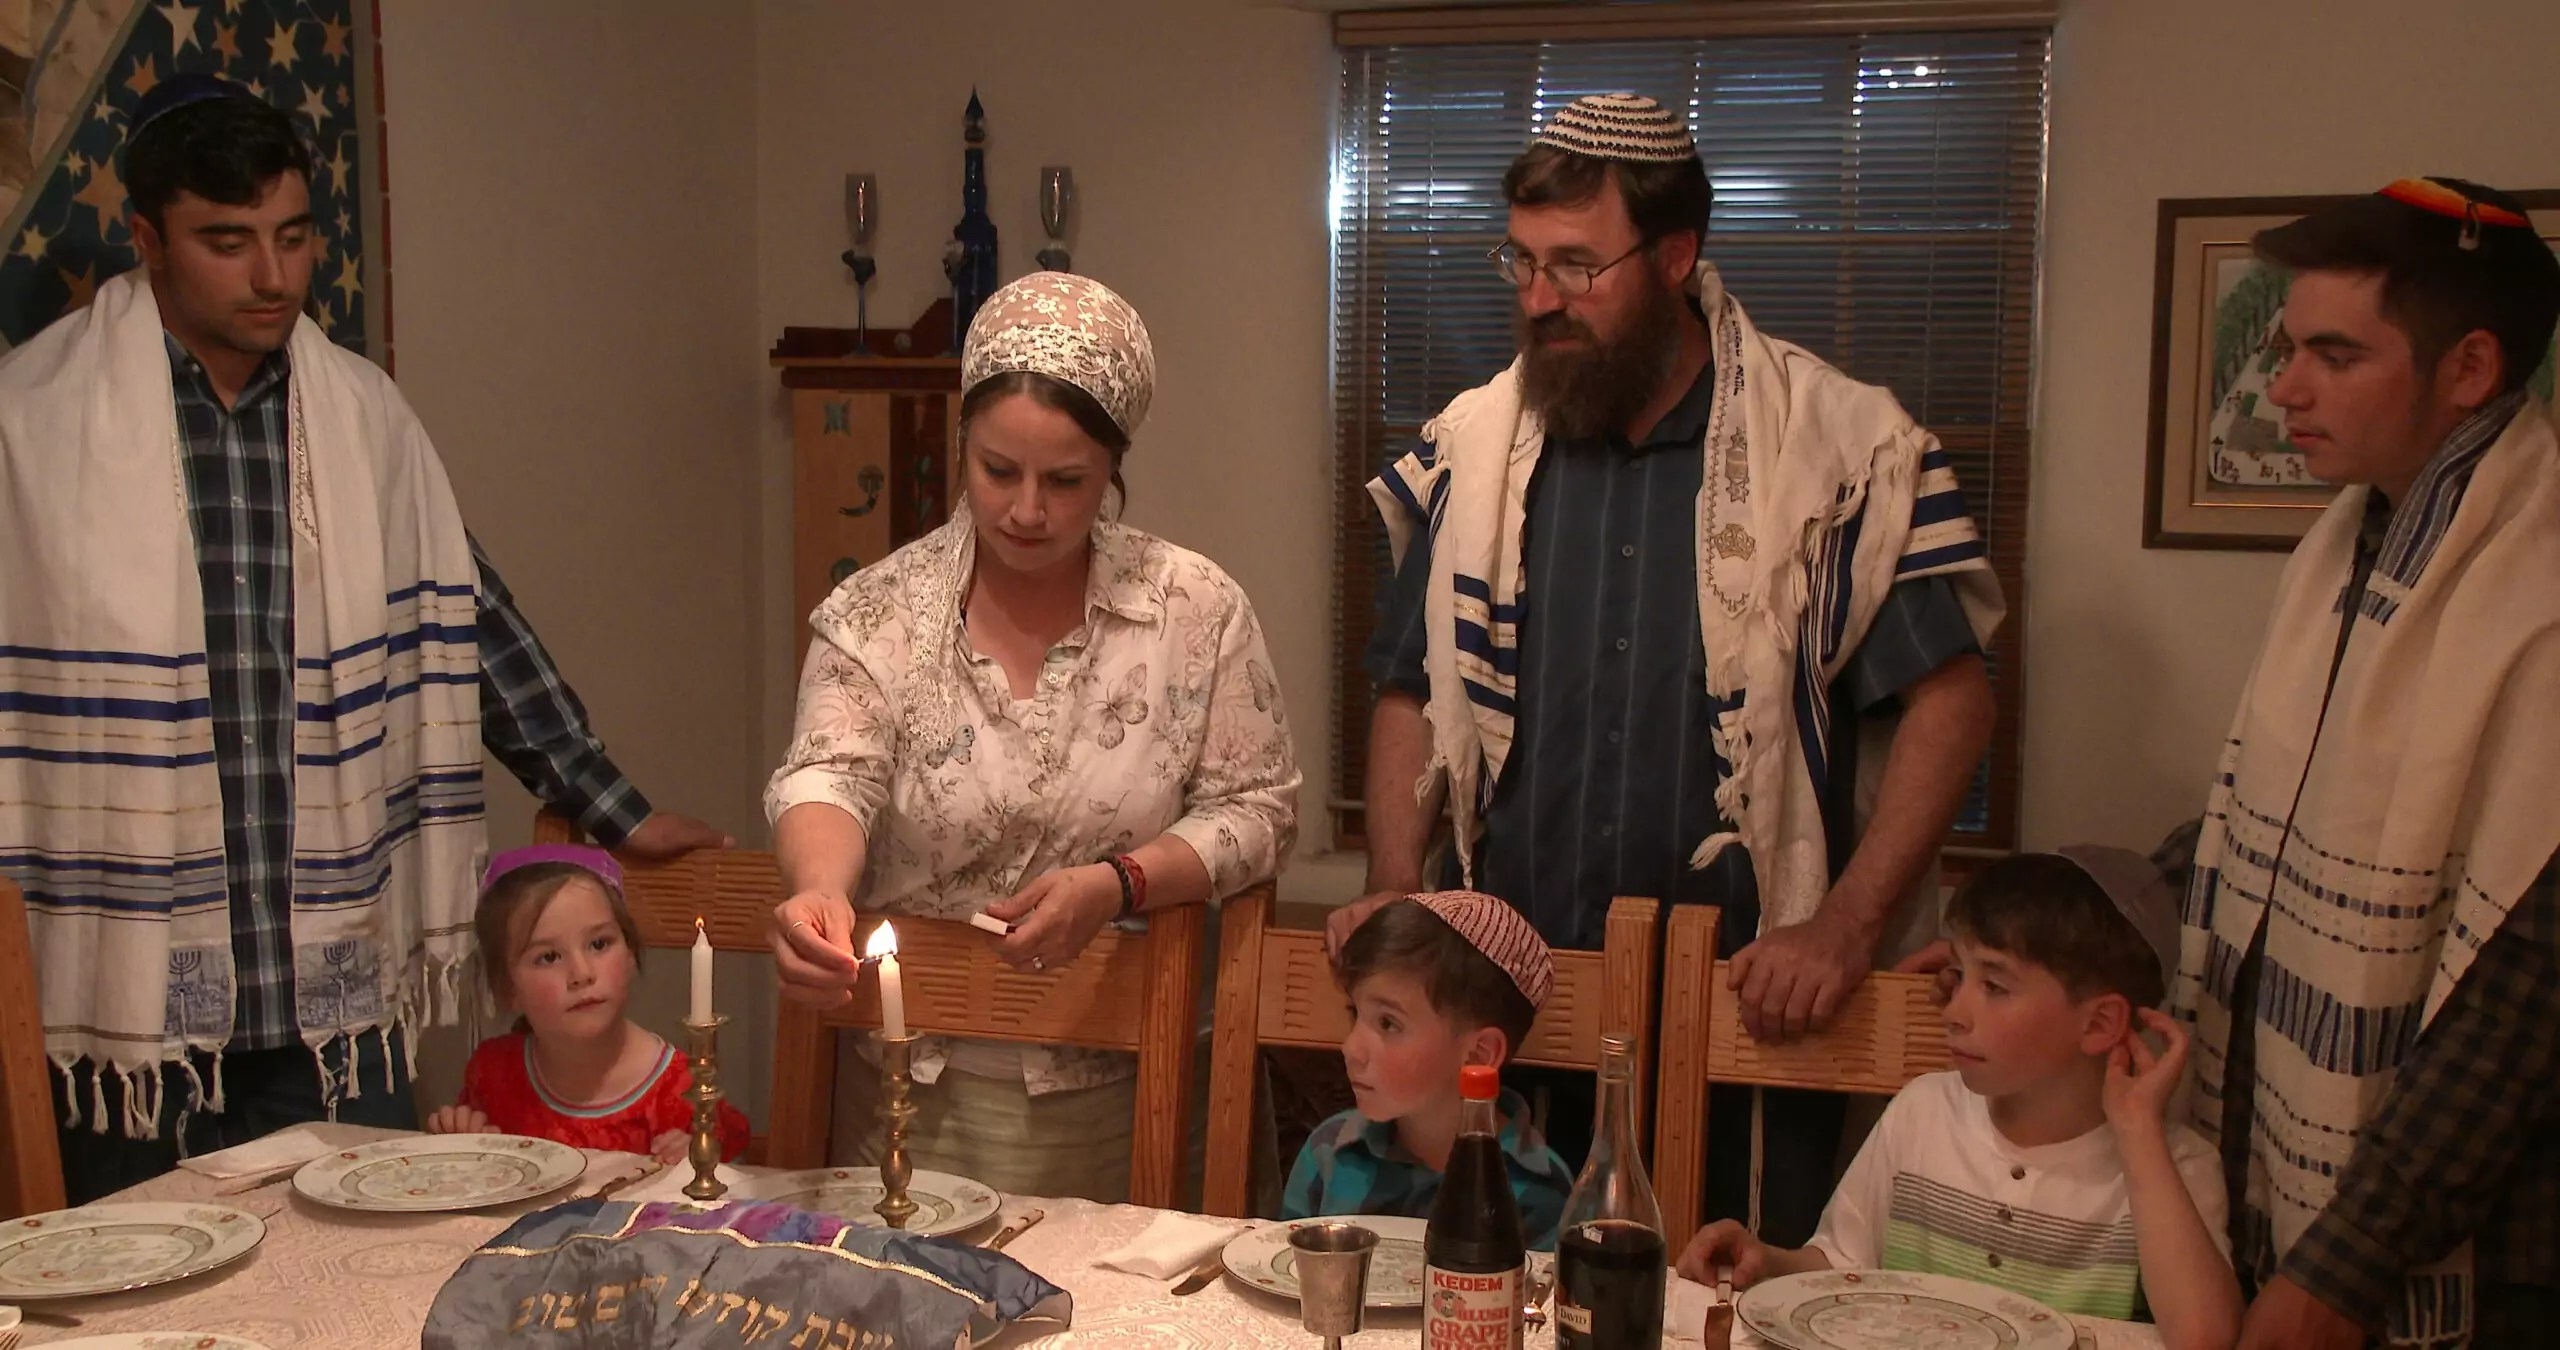 A Jewish family stands around a table.